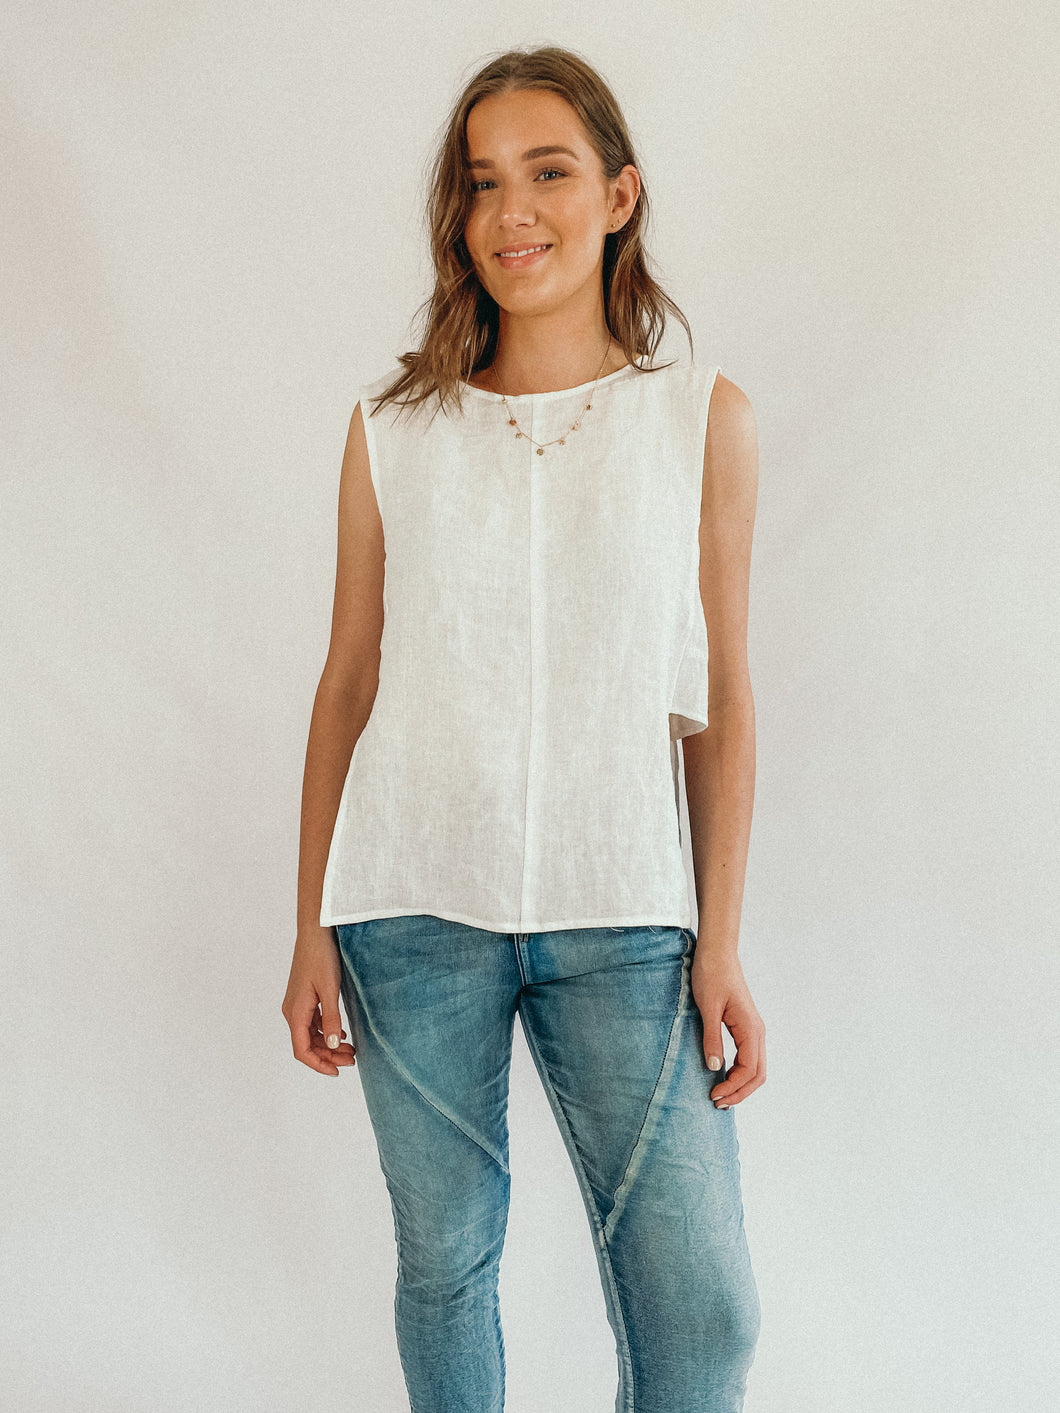 Amalfi Top - Chalk